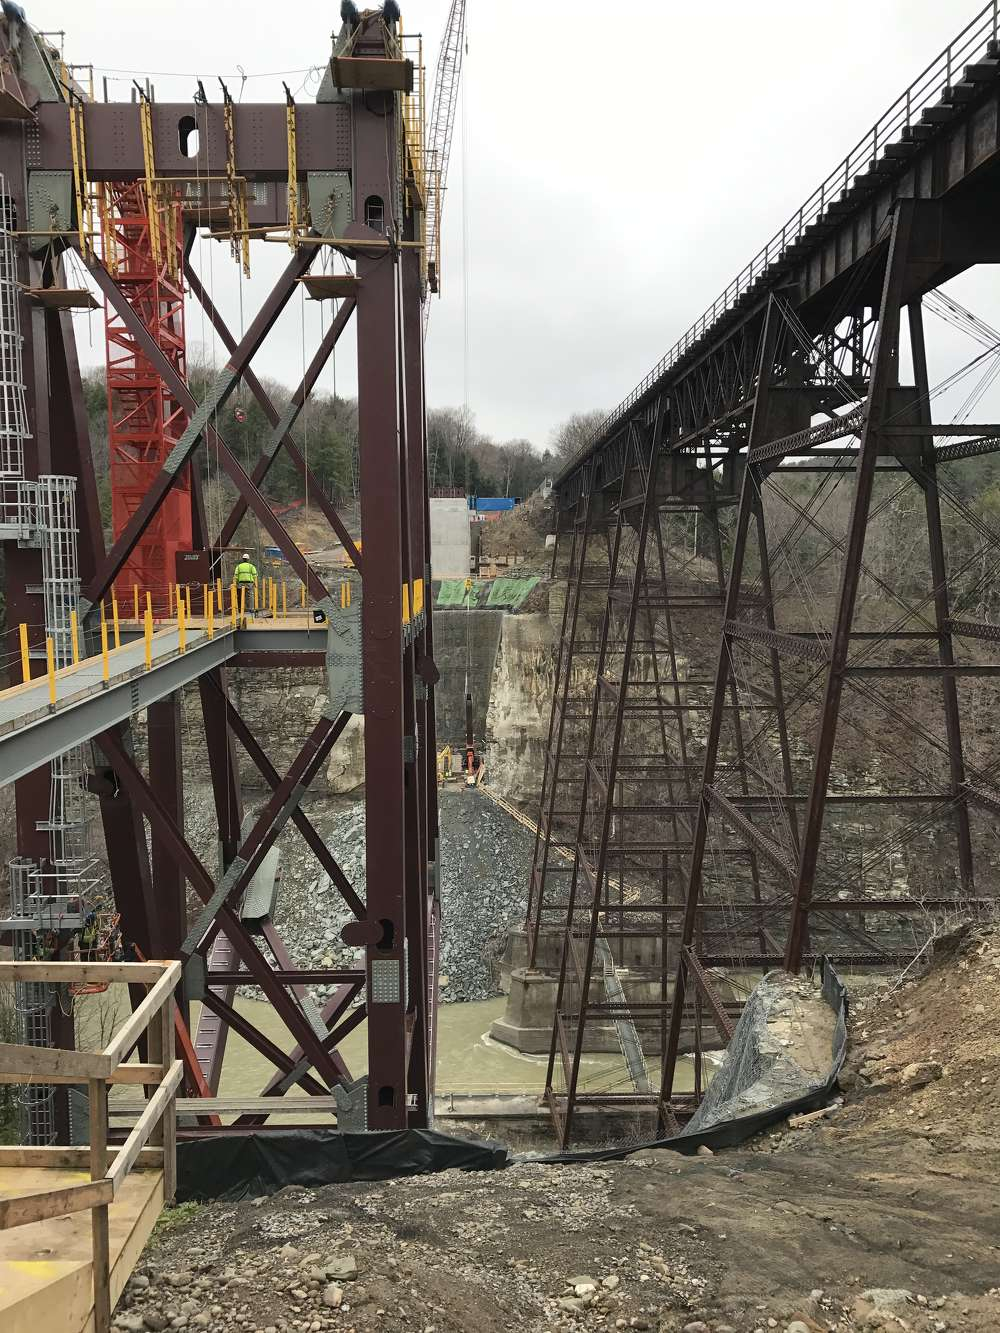 The existing structure, built in 1875, will remain open during construction of the new arch bridge and then be dismantled.